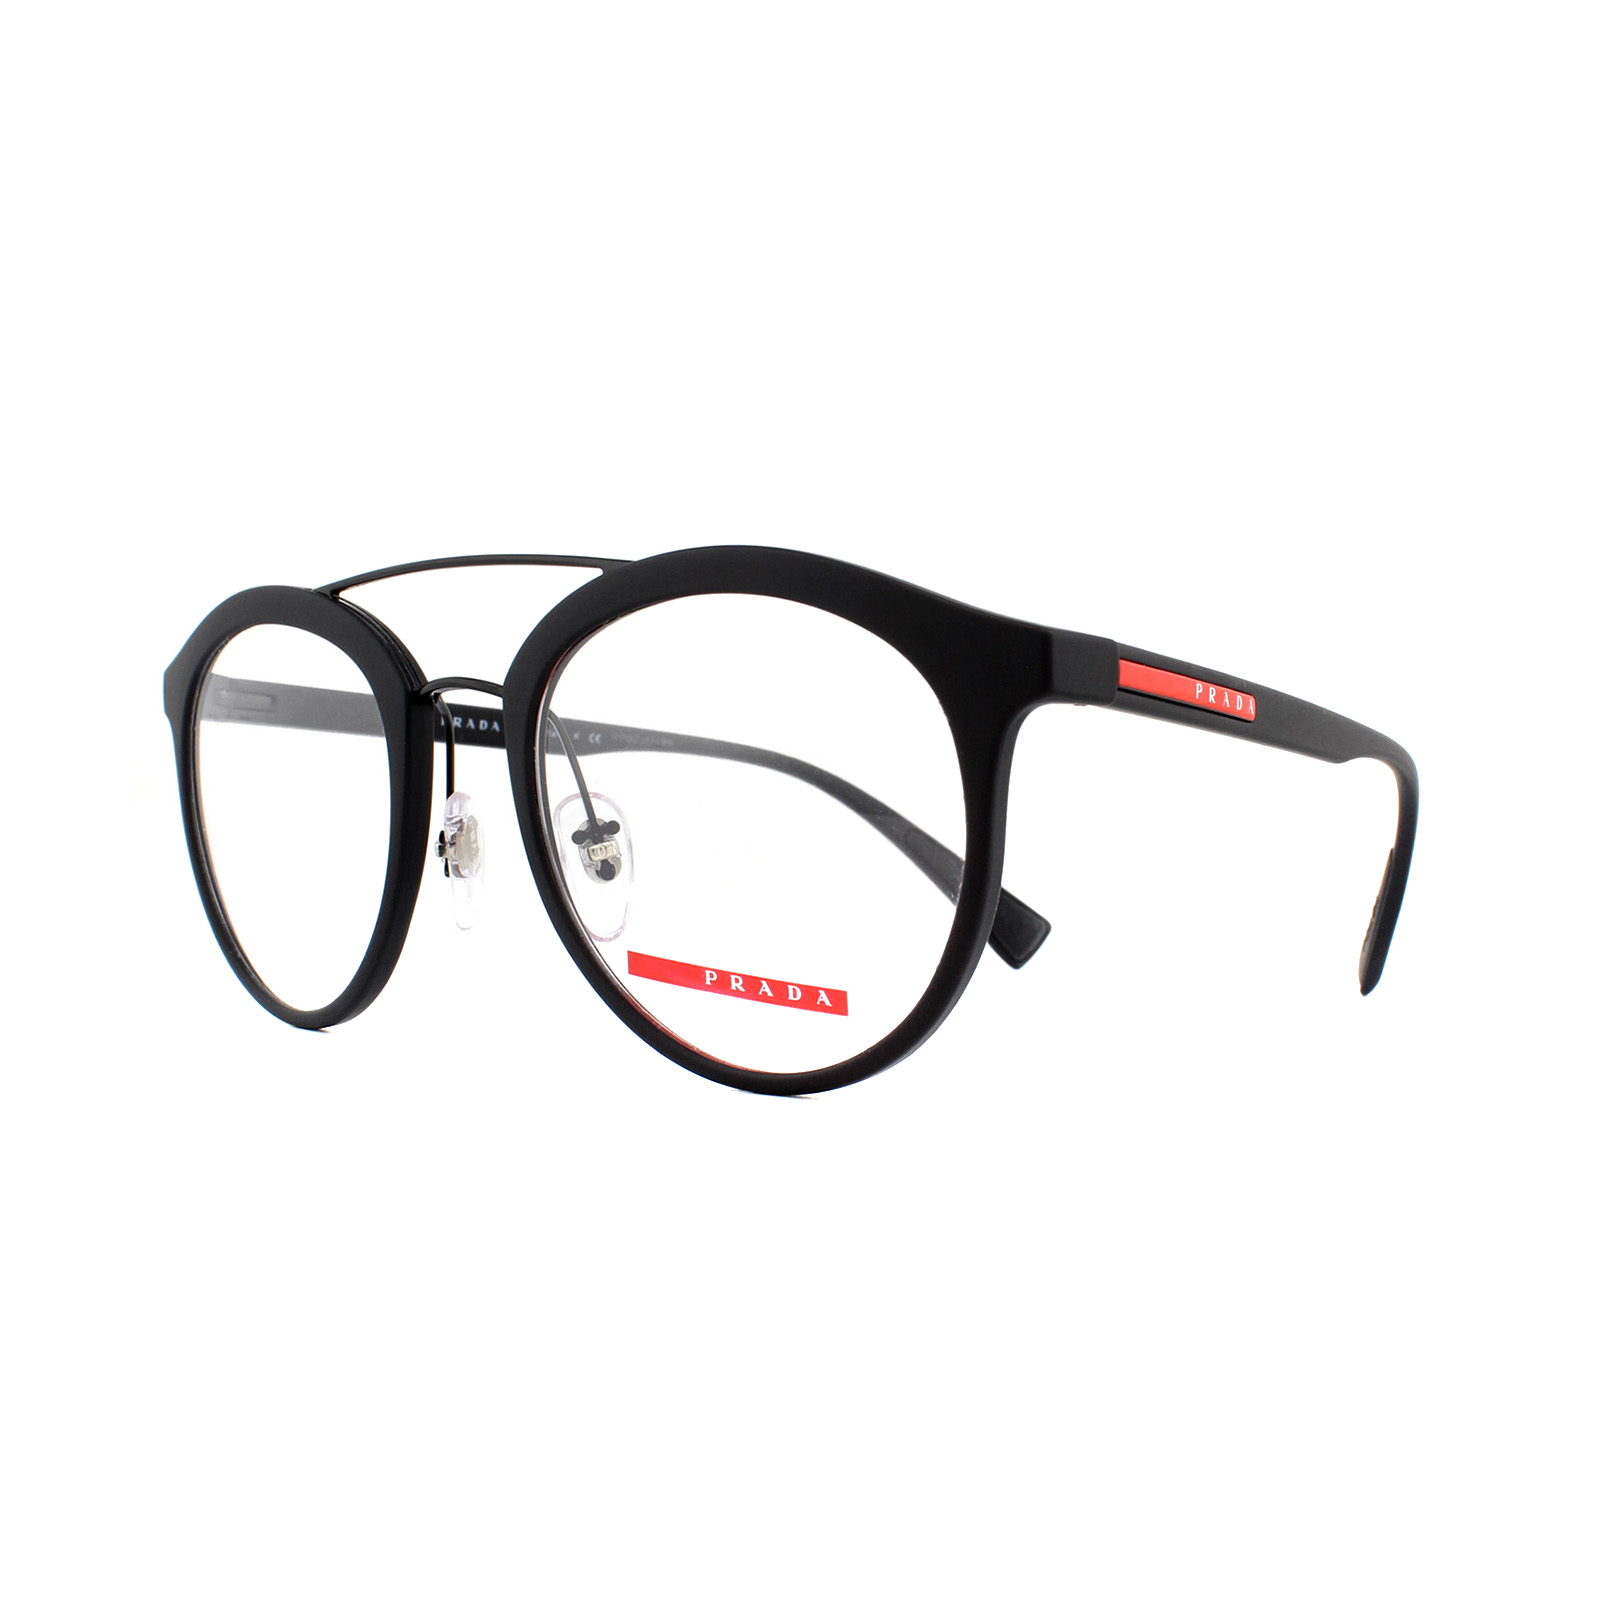 b4167e5e08 Sentinel Prada Sport Glasses Frames PS 01HV DG01O1 Black Rubber 50mm Mens